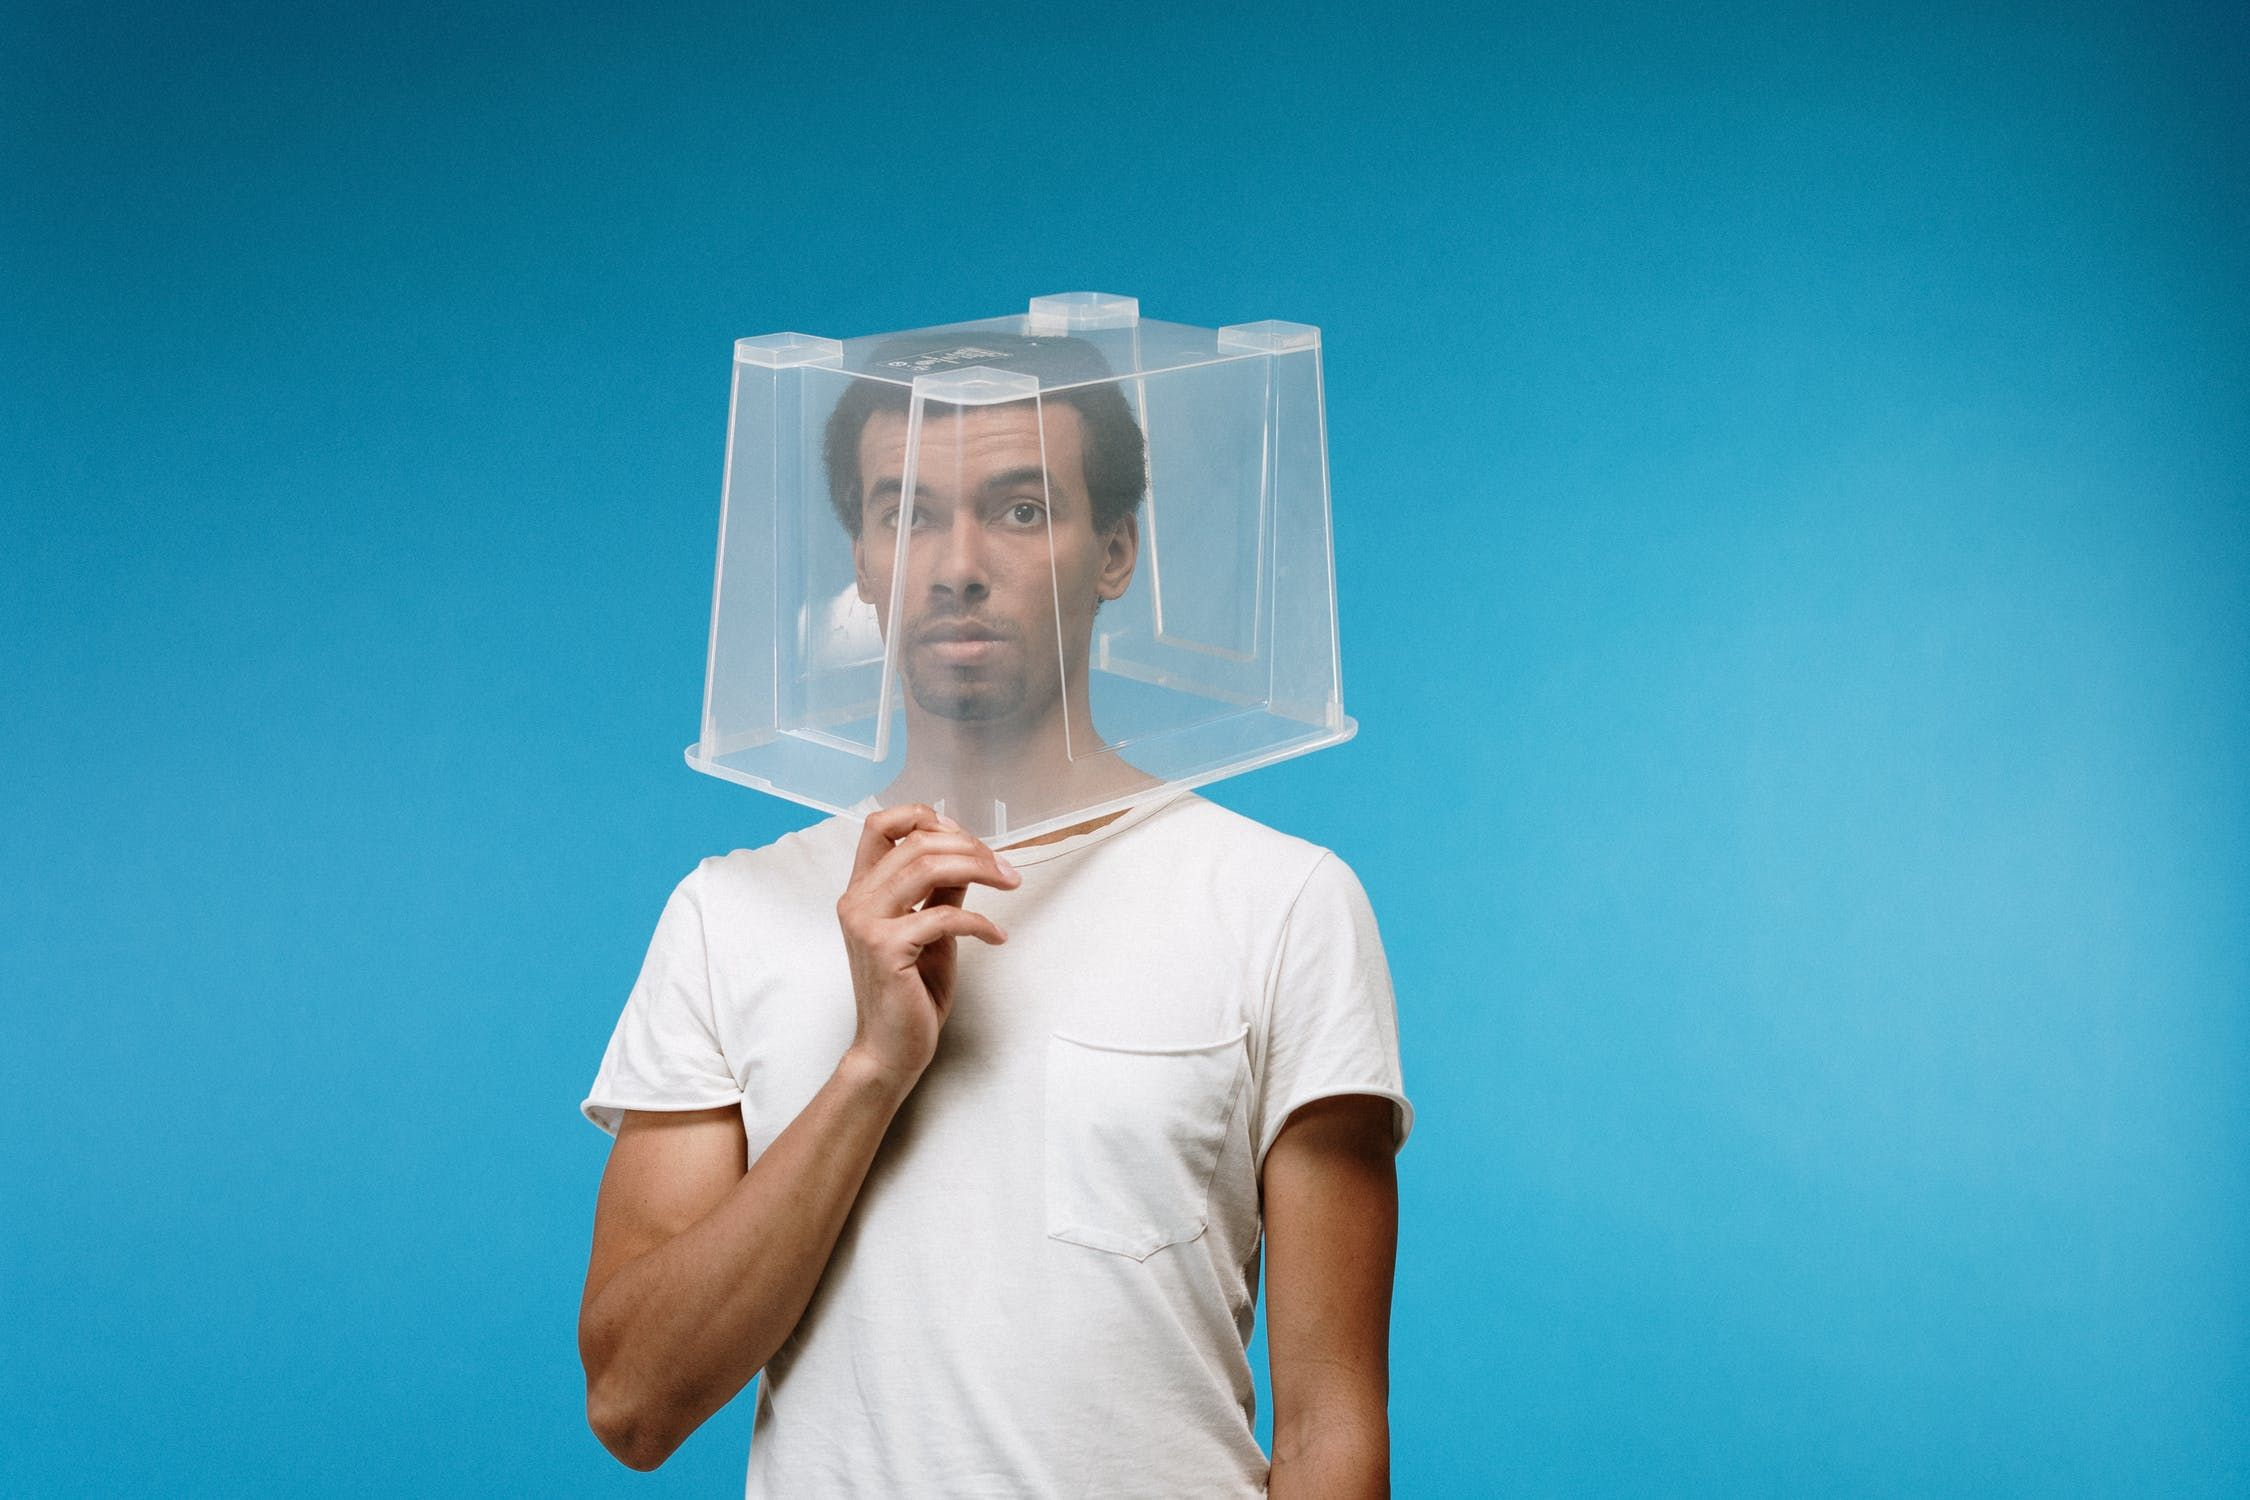 A man with a plastic box on his head